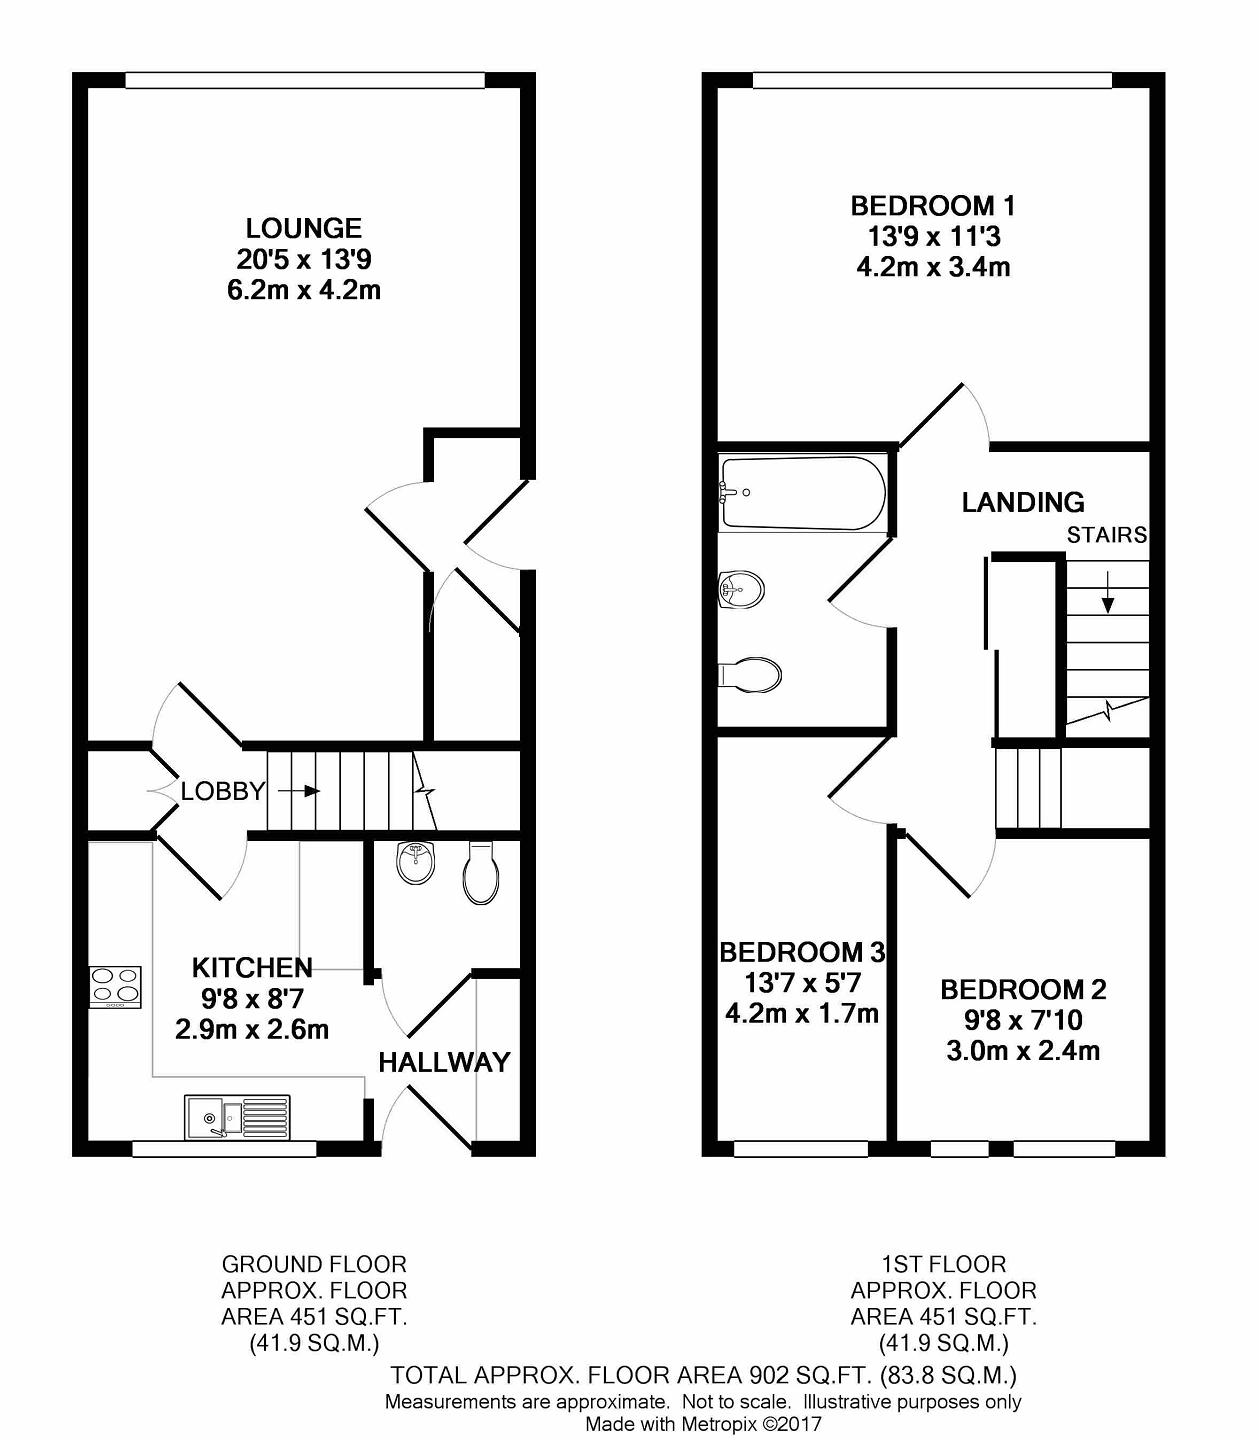 5x8 bathroom floor plan wood floors Bathroom floor plans 7 x 8